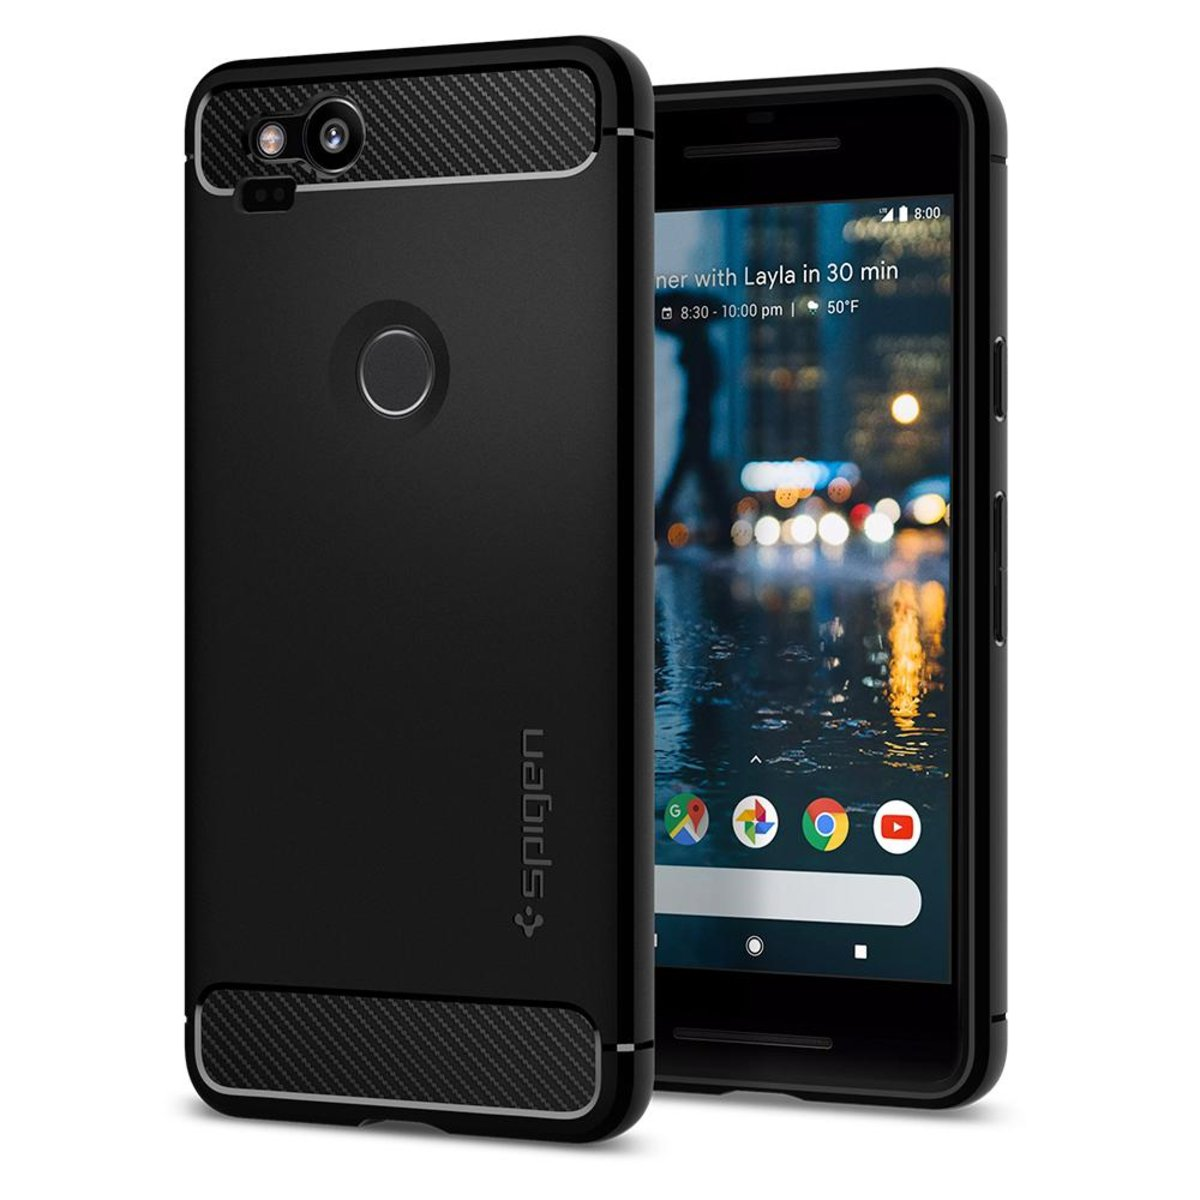 Pixel 2 Case Rugged Armor